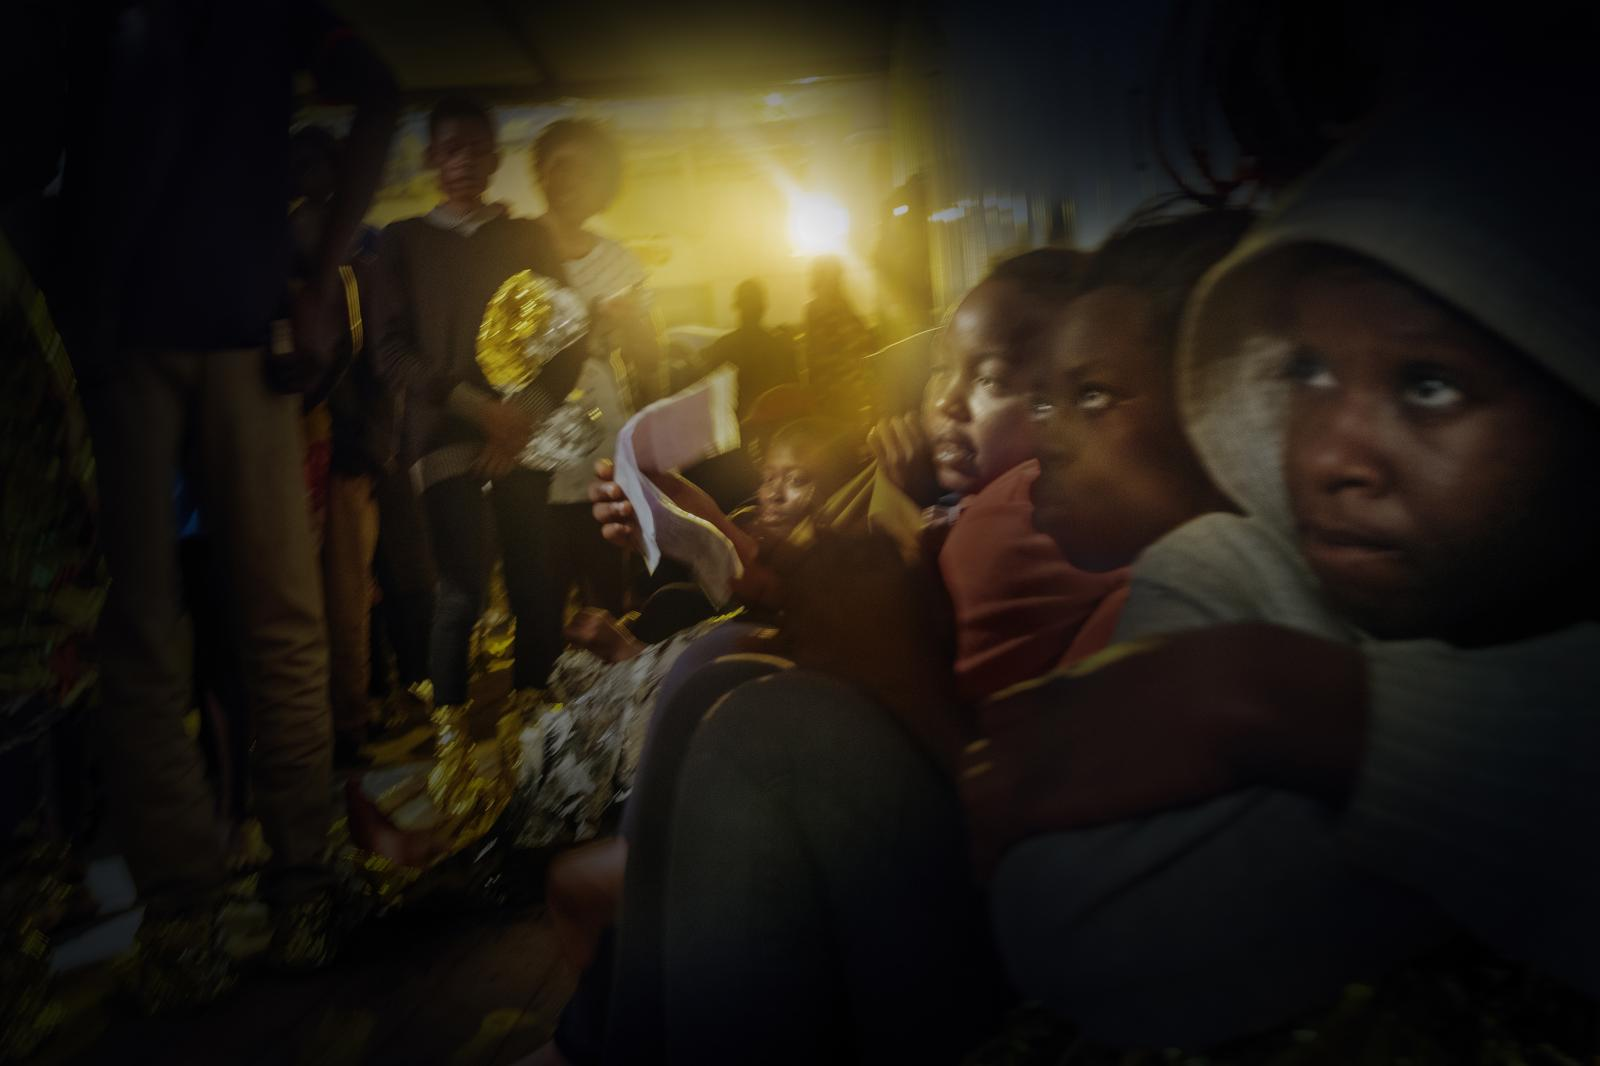 Refugees and migrants on board the Bourbon Argos while blankets and food are handed out for the first night on the passage to Italy.